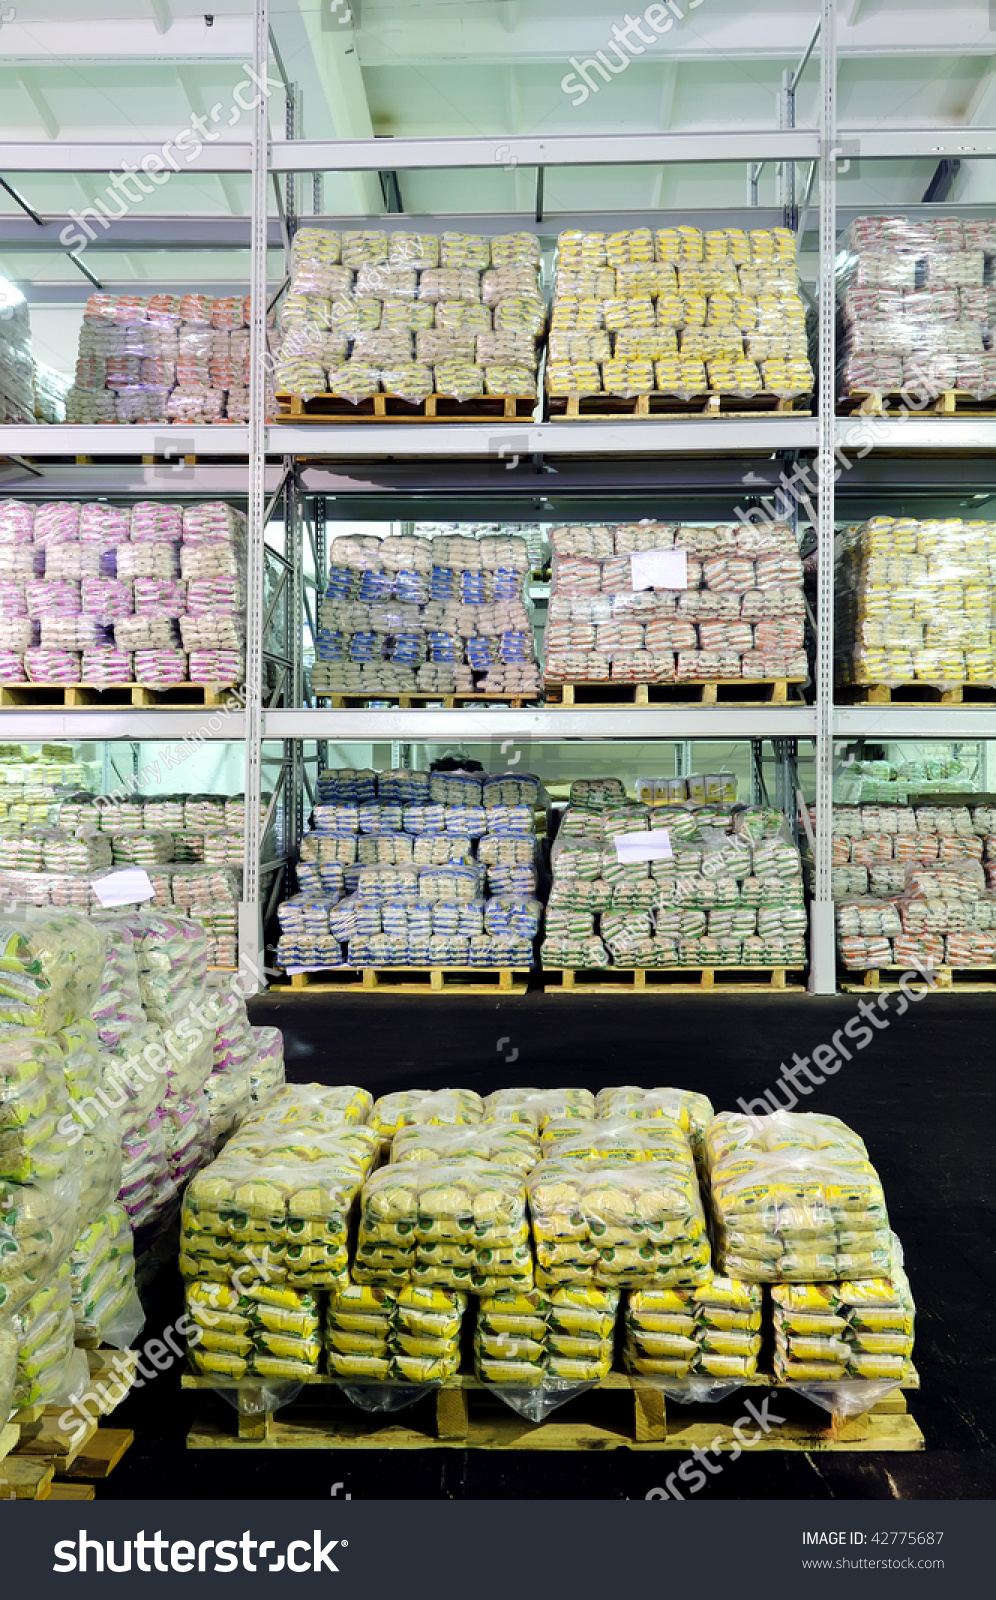 Pile Of Food Production Stacked In Warehouse Shelves Stock Photo 42775687 : Shutterstock